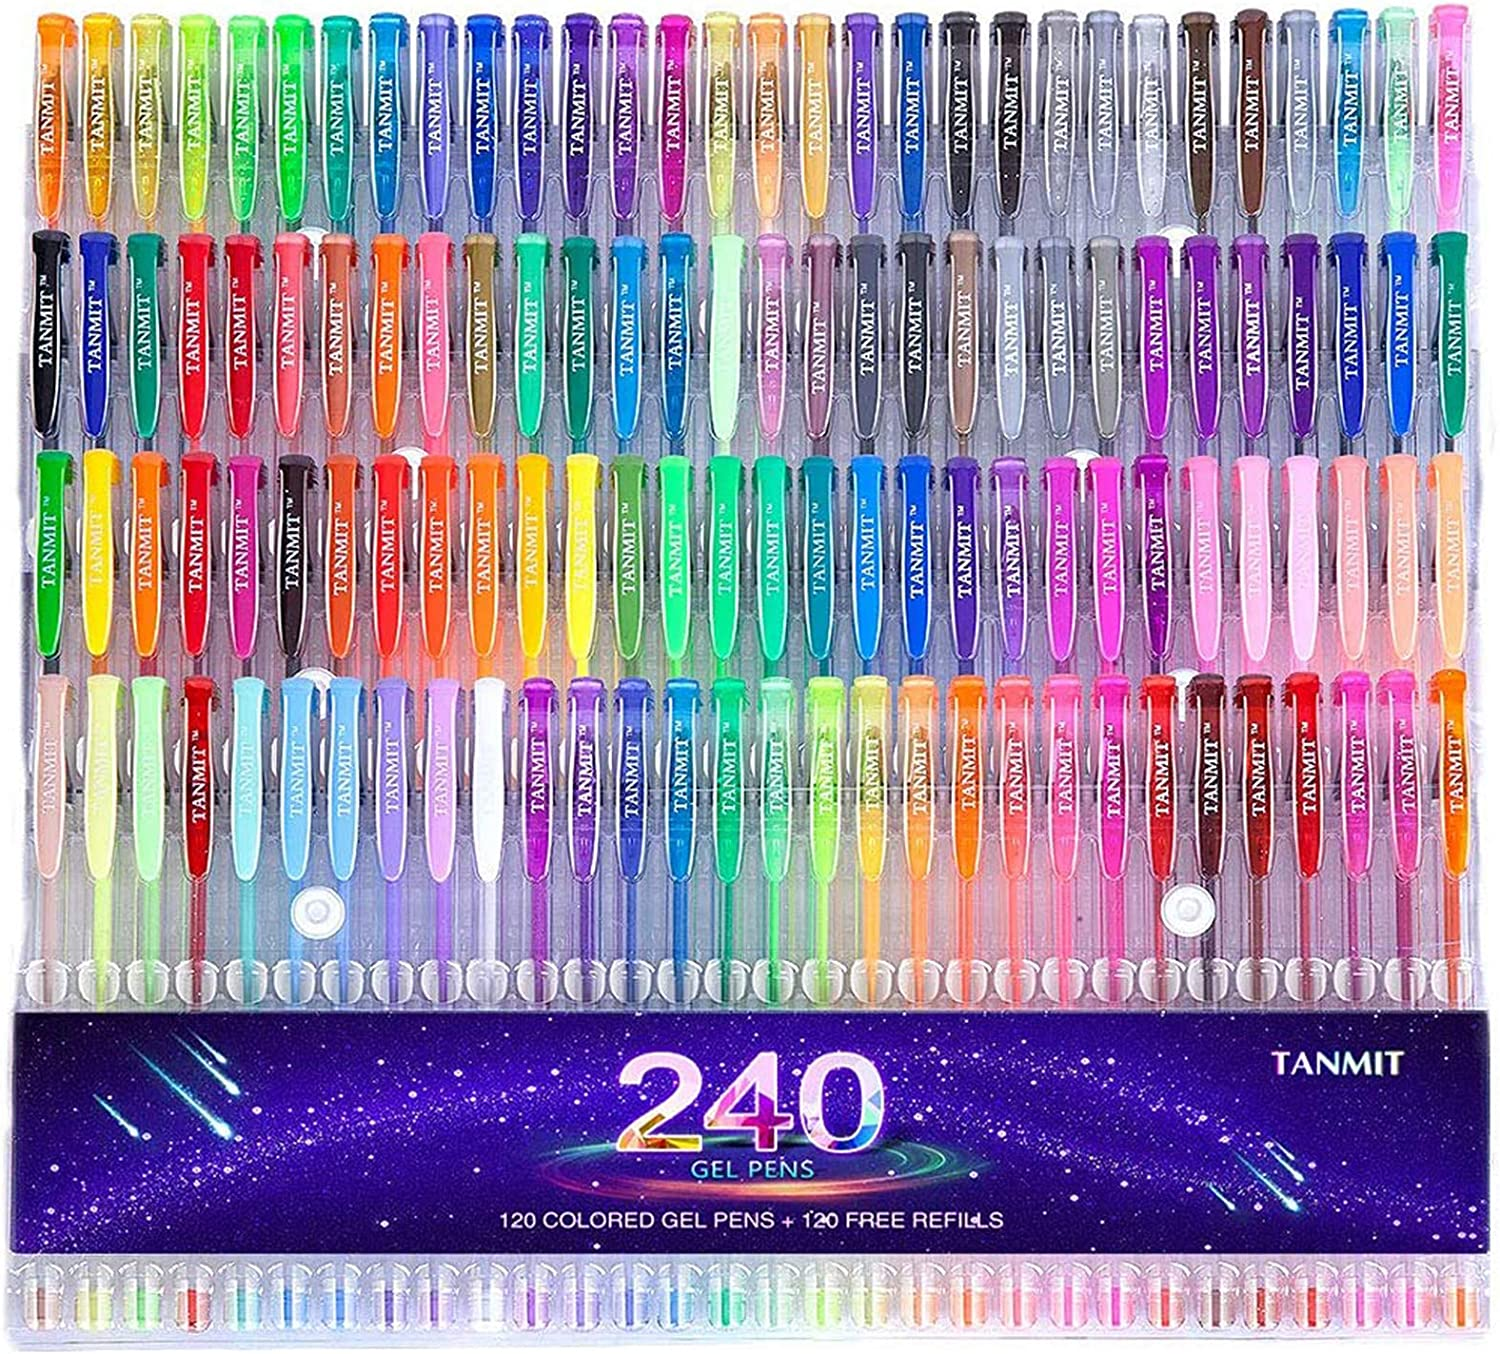 Gel Pens,Tanmit Gel Pens Set, 120 Colored Gel Pen plus 120 Refills for Adults Coloring Books